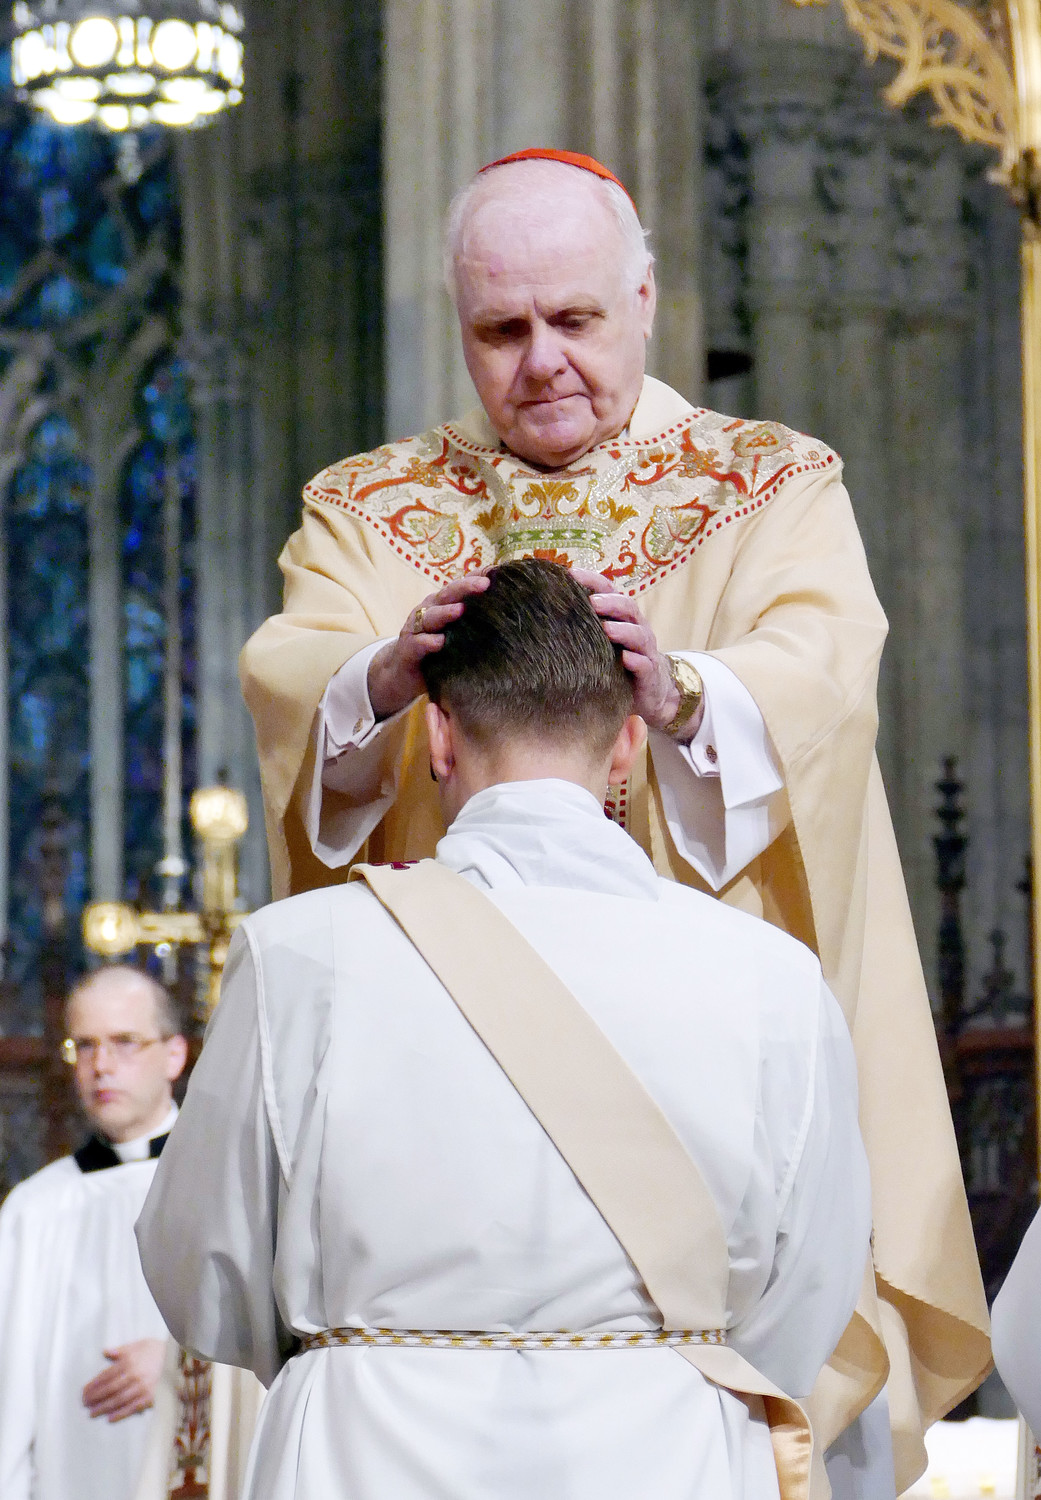 Cardinal Edwin O'Brien, the grand master of the Equestrian Order of the Holy Sepulchre of Jerusalem who was ordained for the Archdiocese of New York at St. Patrick's Cathedral in 1965, lays hands on one of the ordinands.